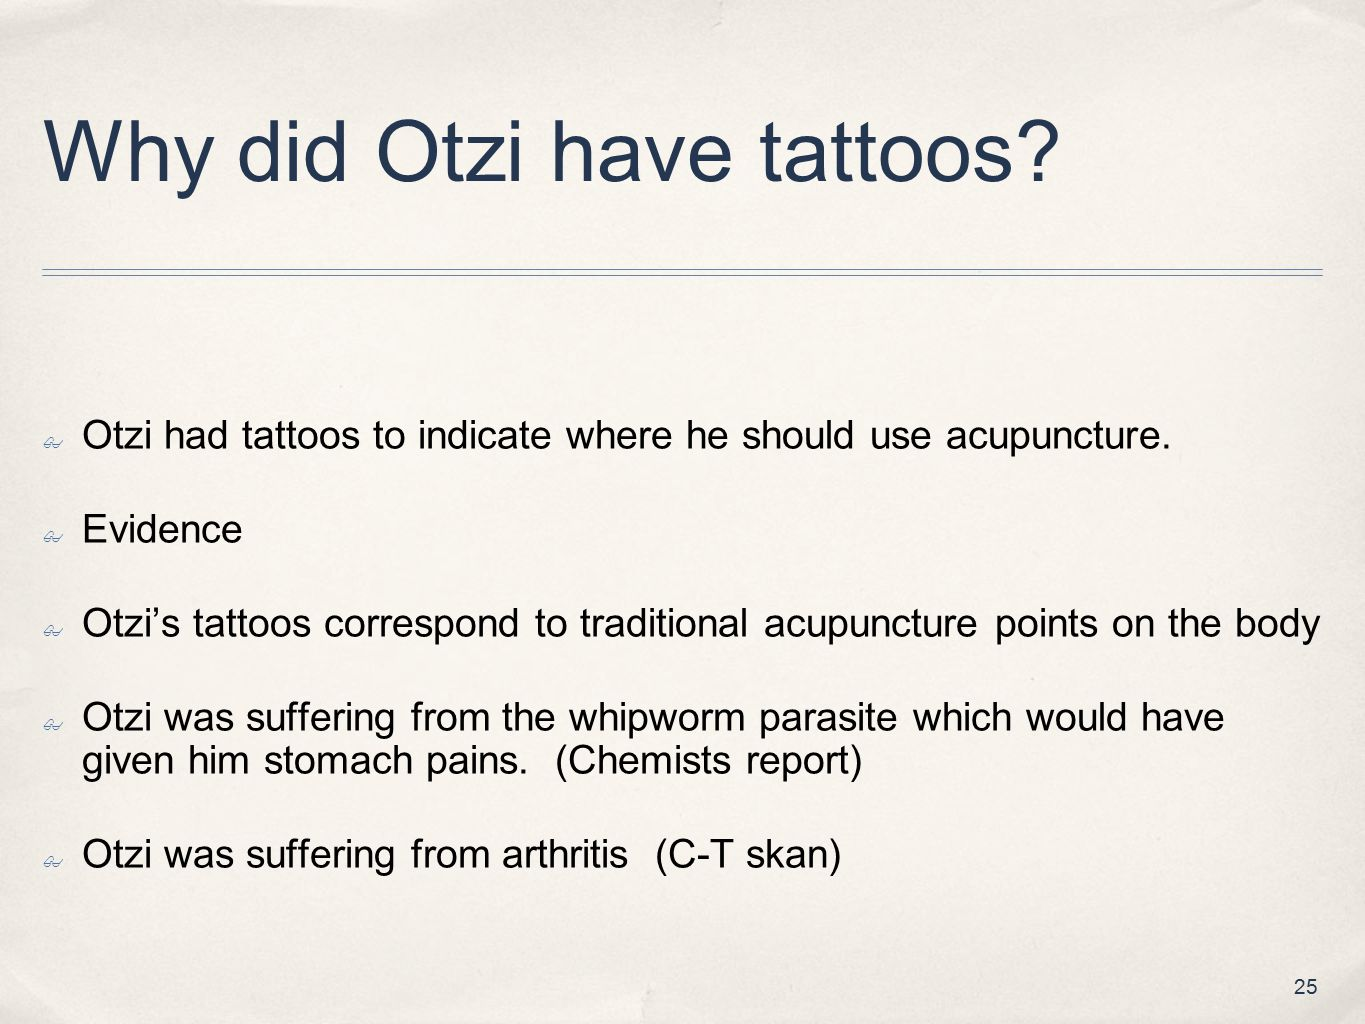 Why did Otzi have tattoos